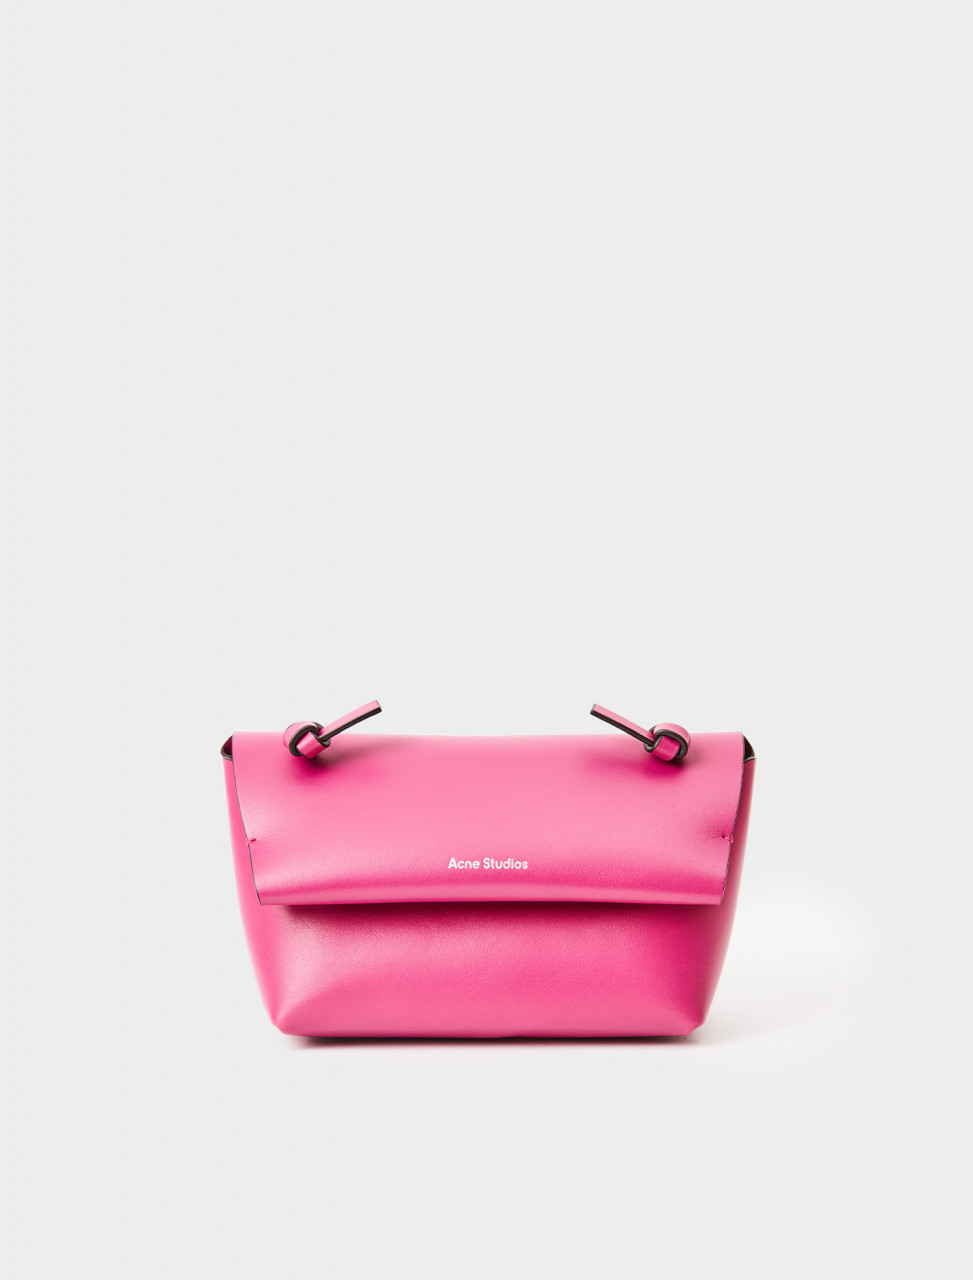 CG0151-ACT ACNE STUDIOS KNOTTED STRAP PURSE FUCHSIA PINK